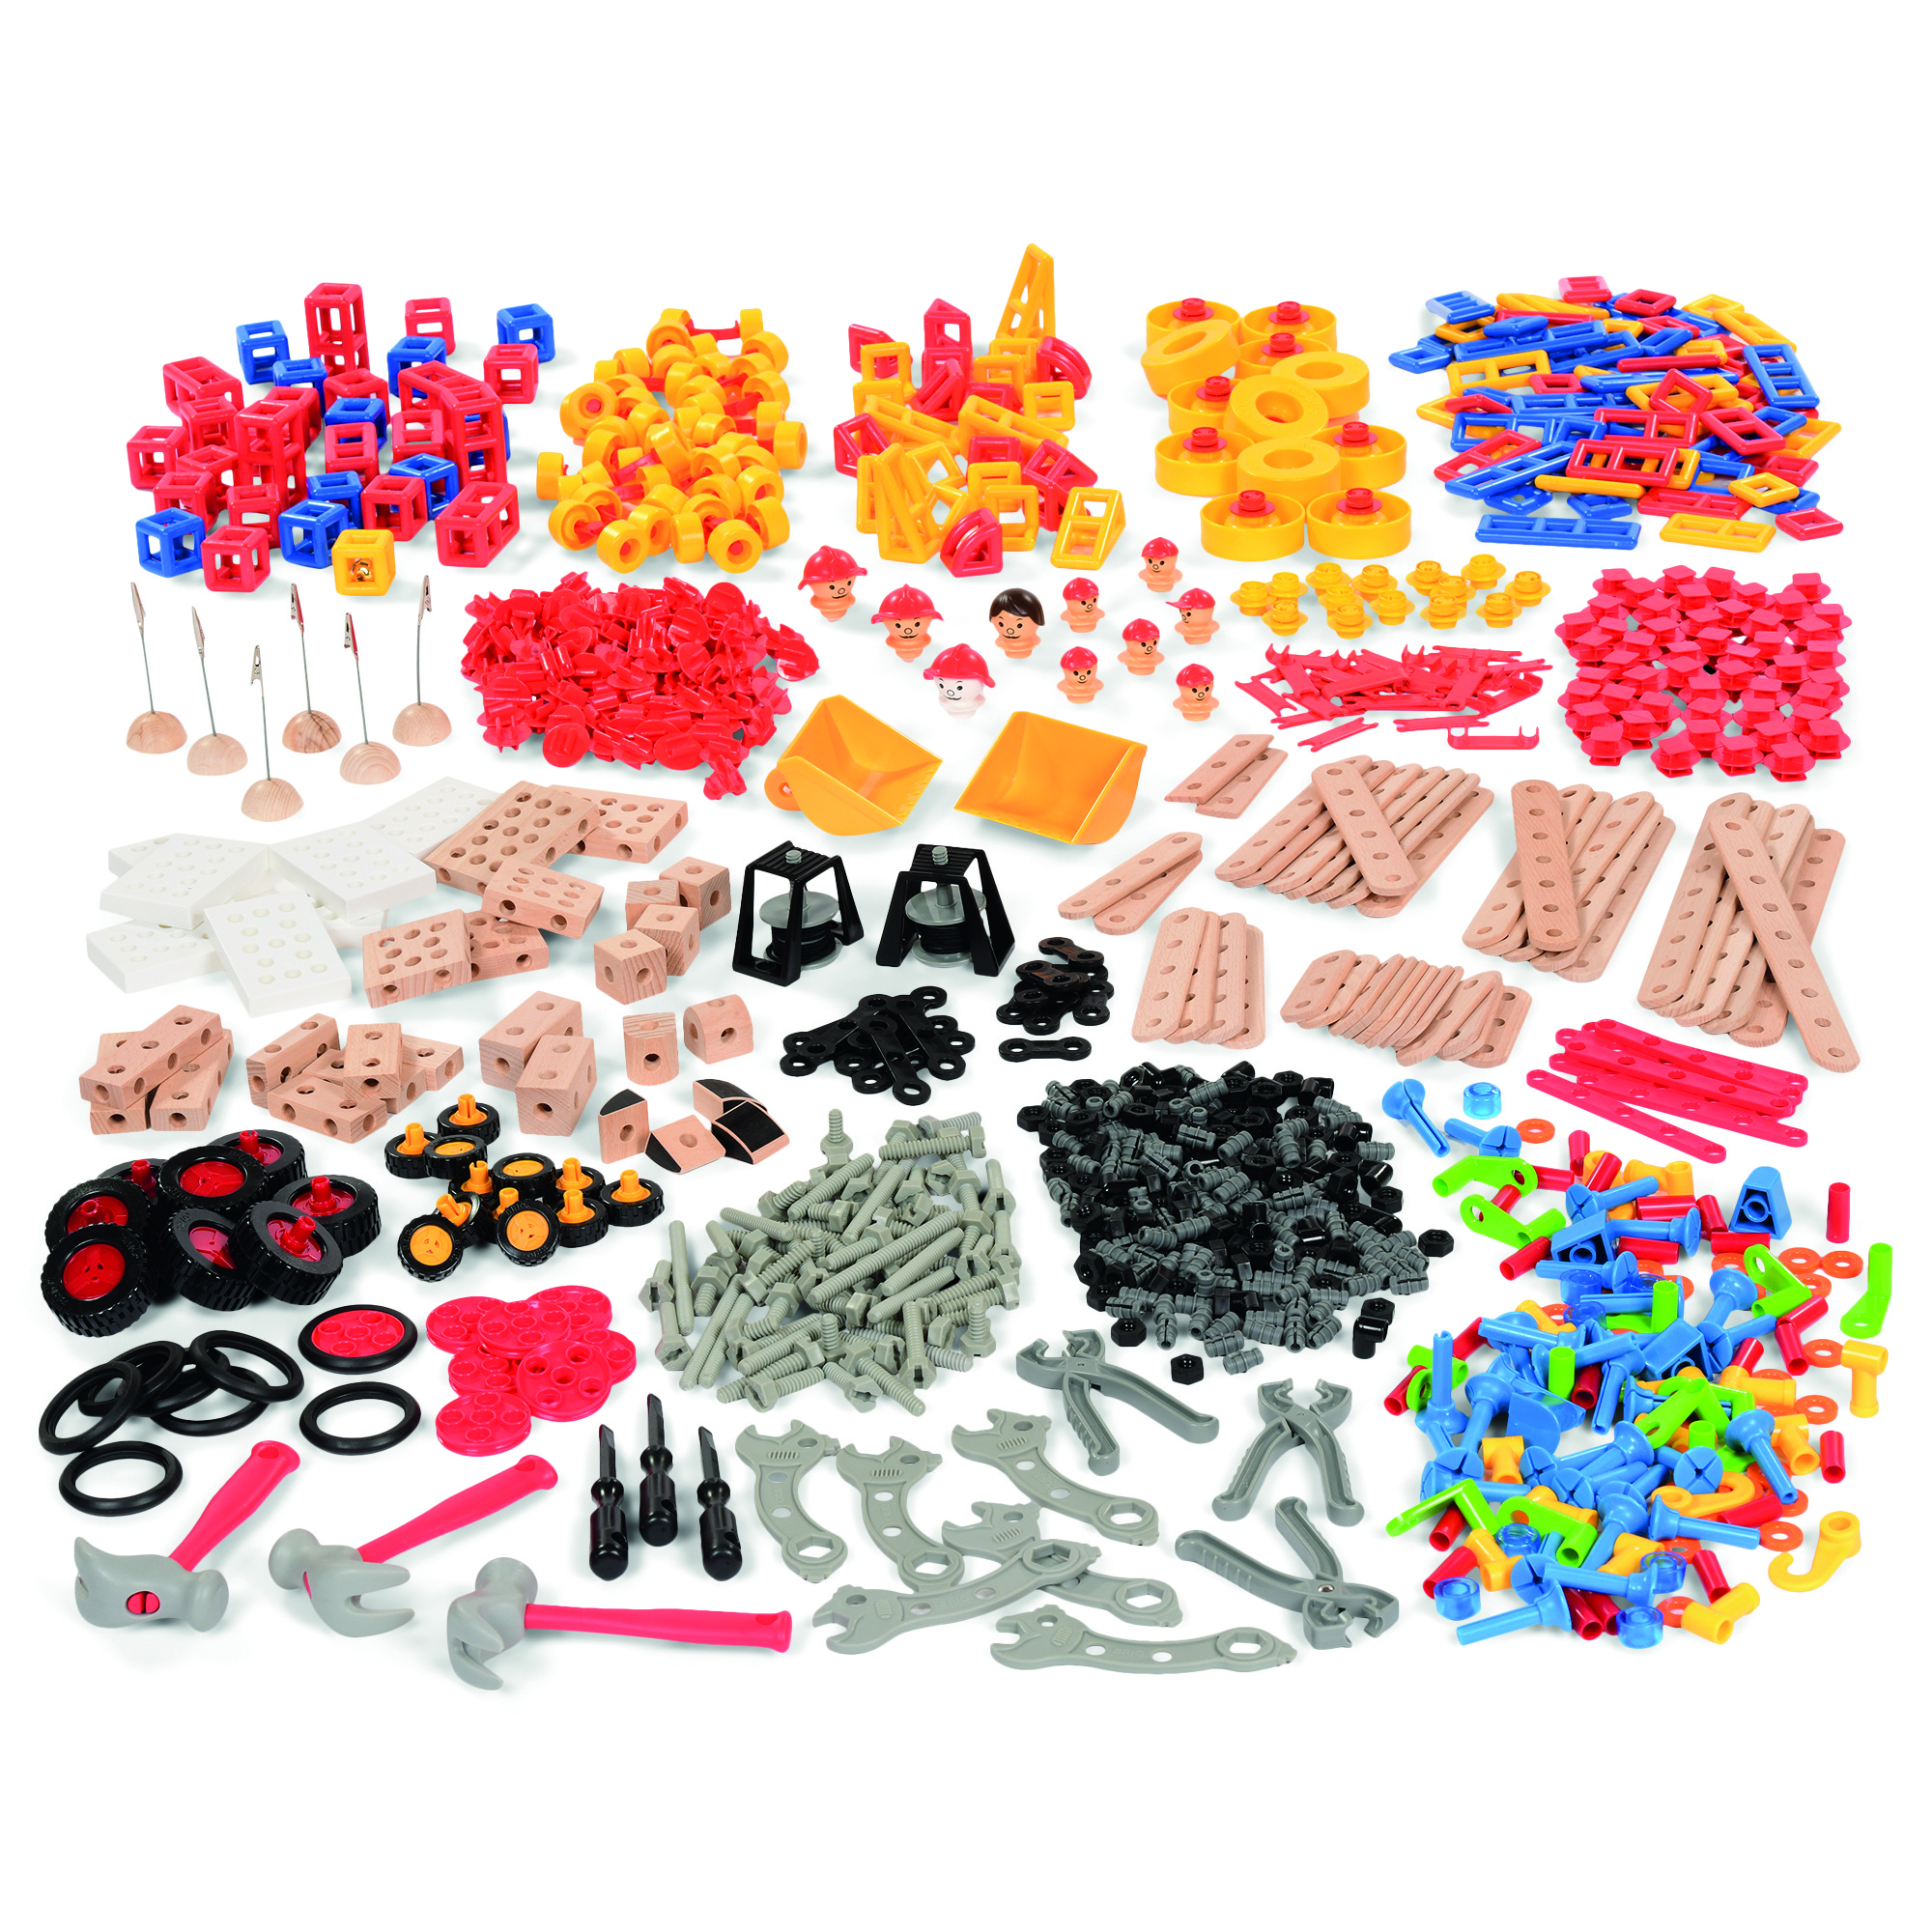 Small Construction Resource Collection 4-5yrs